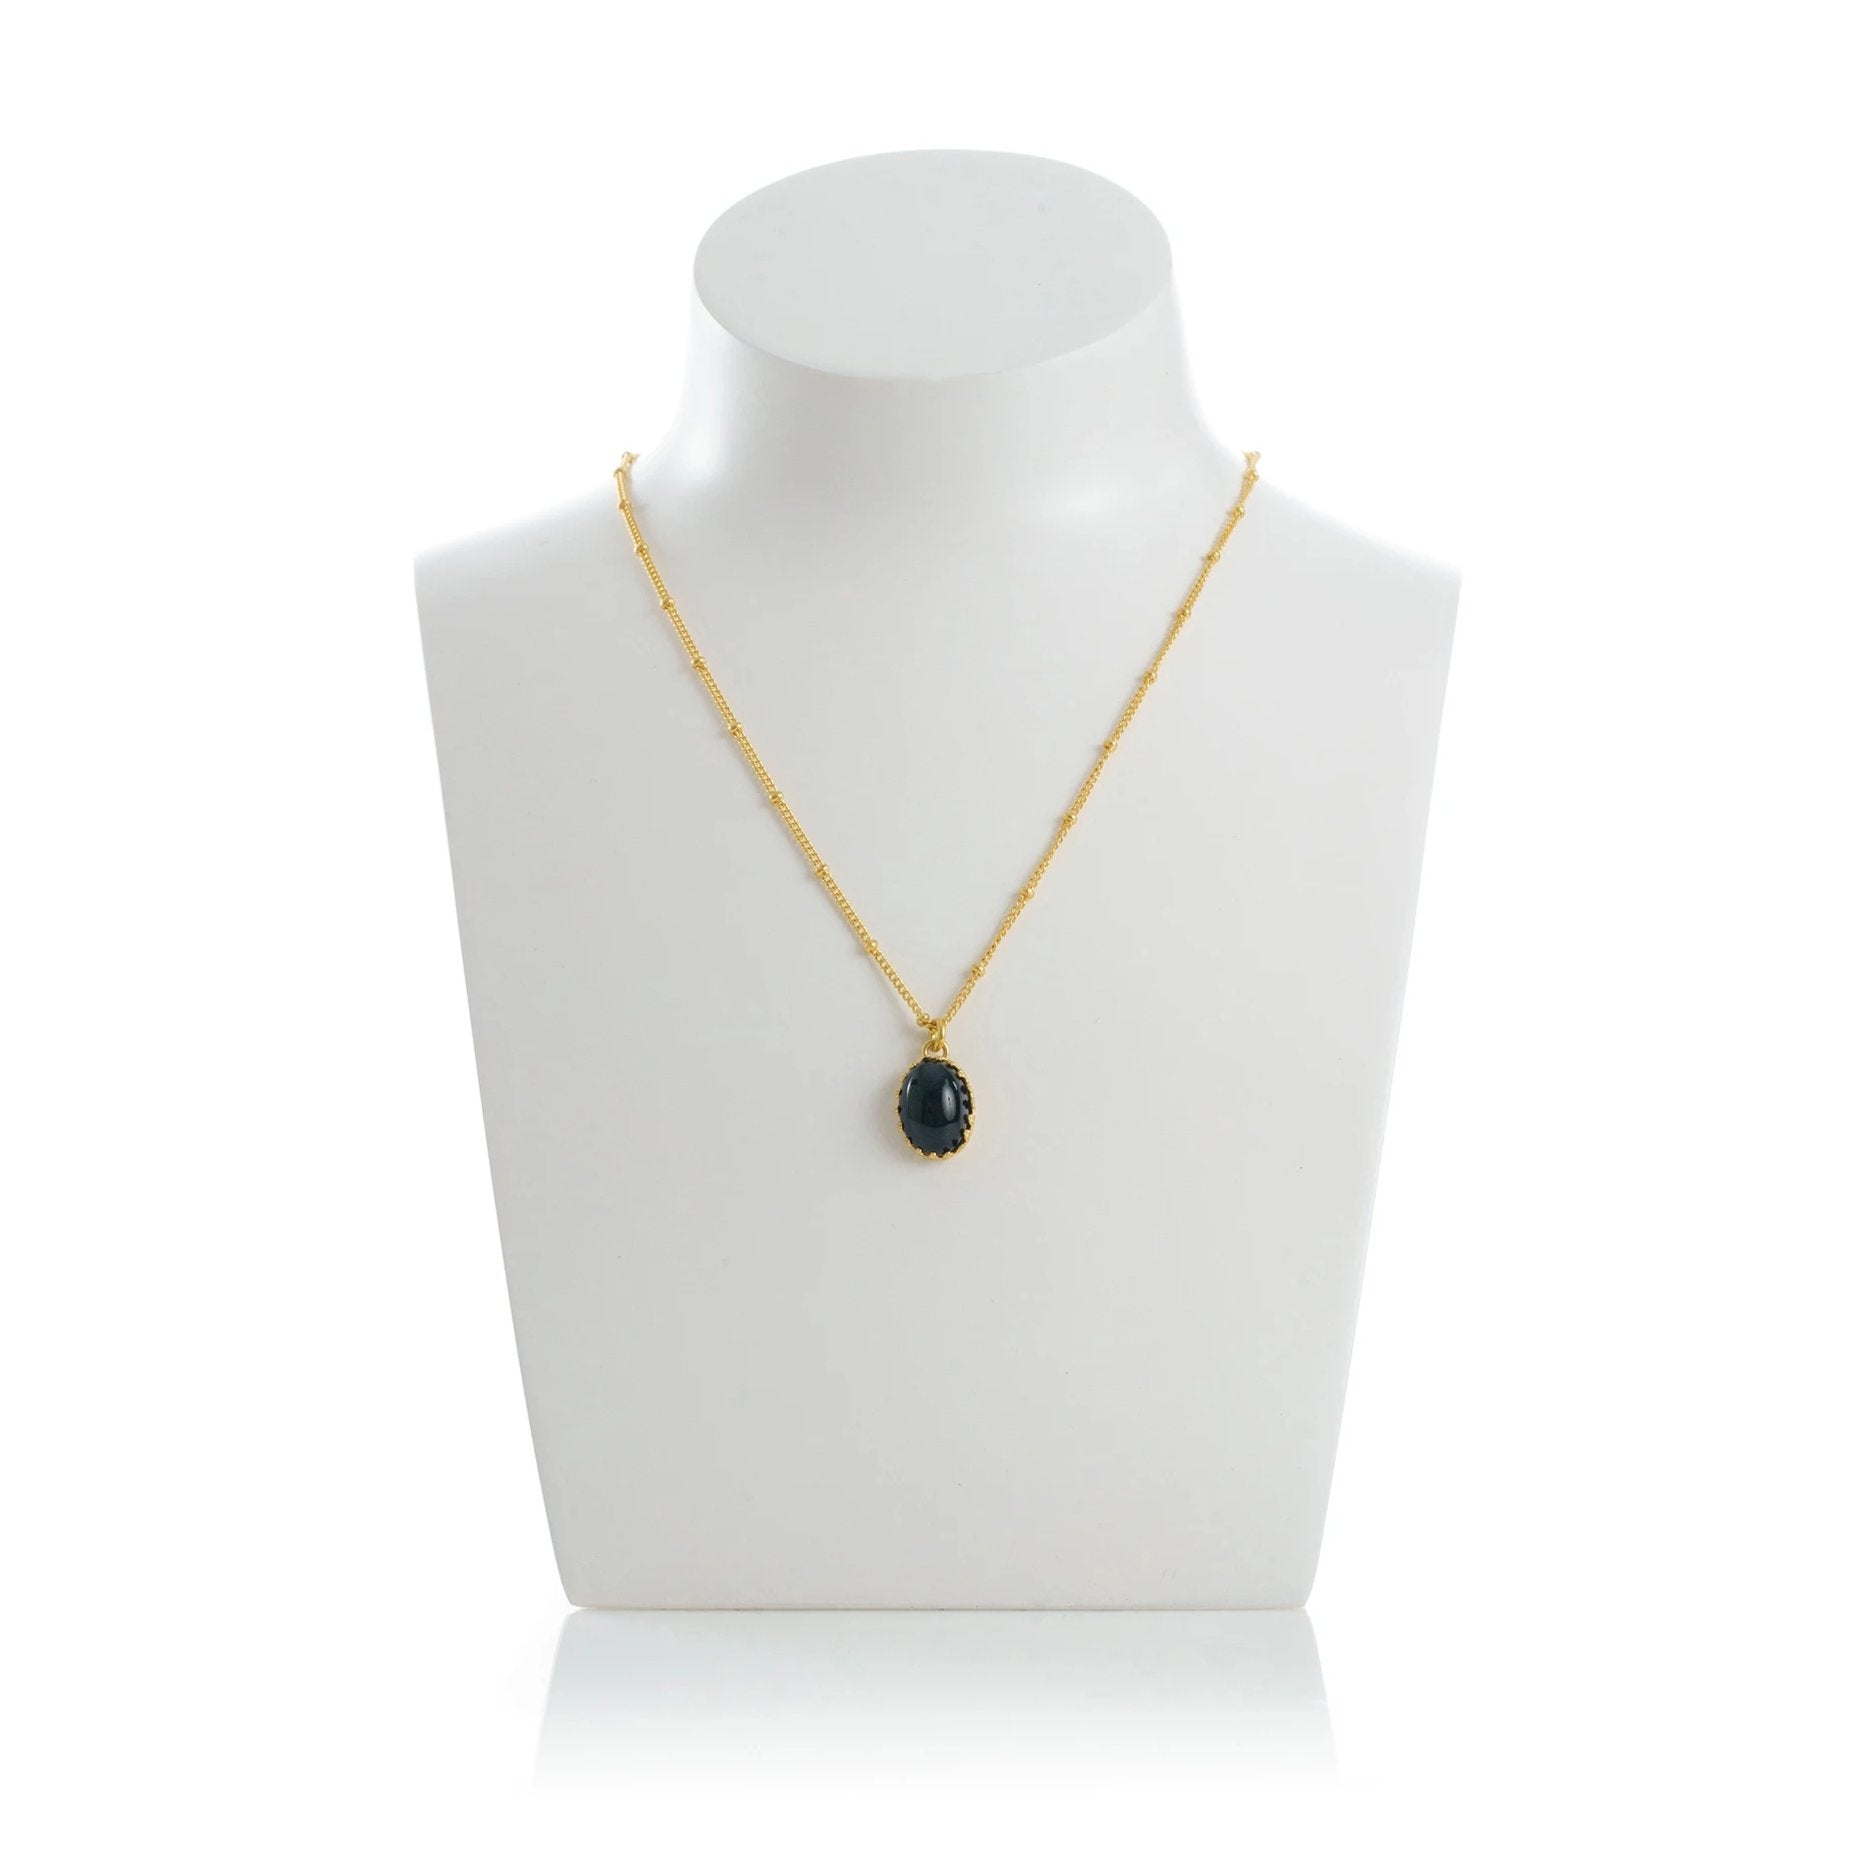 MEDICIS Vintage-inspired necklace Black